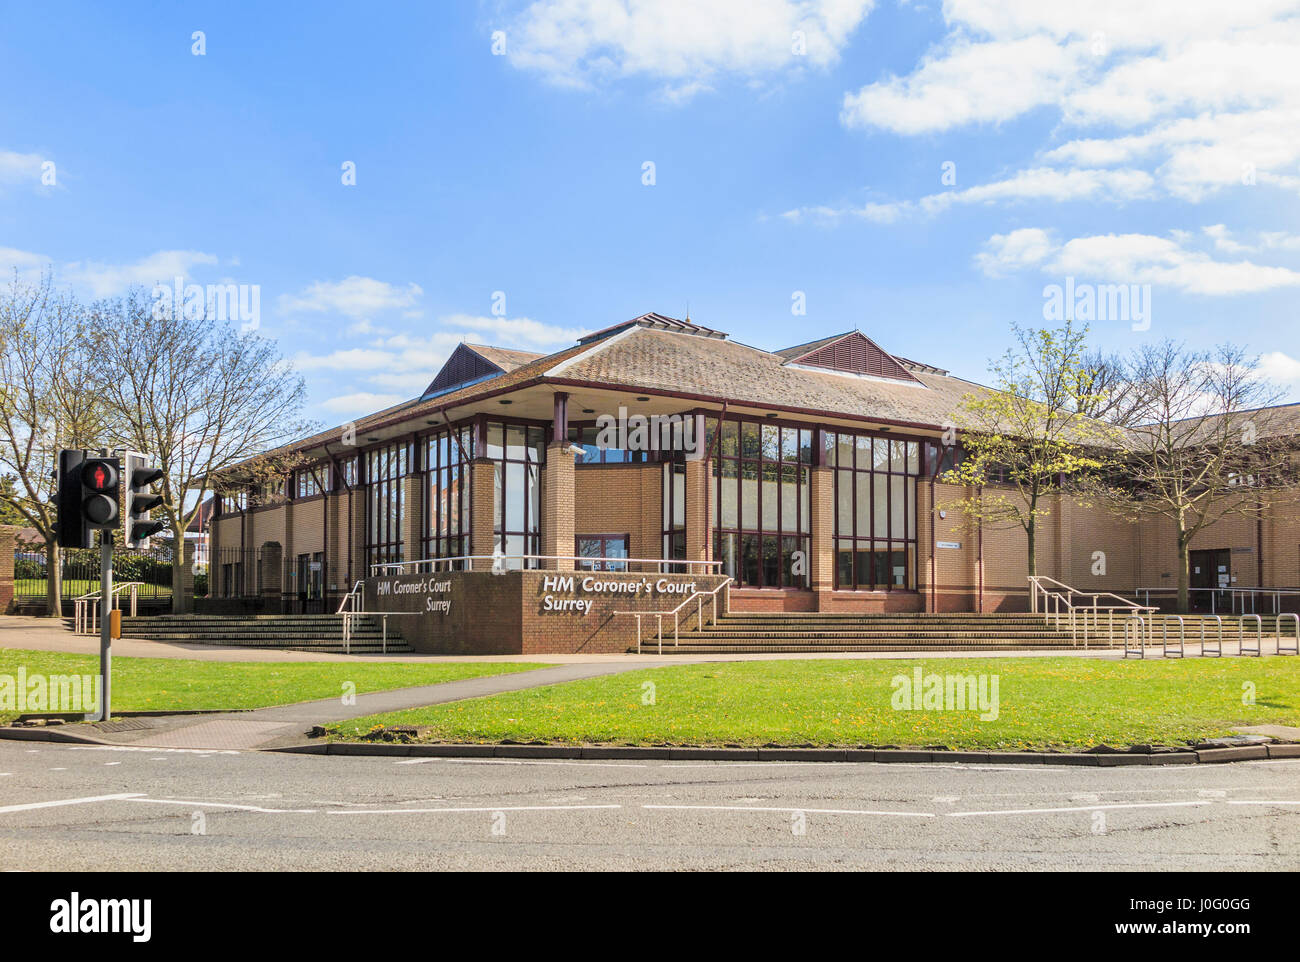 HM Coroners Court, Woking, Surrey, where inquests are held, a legal inquiry into the medical cause and circumstances - Stock Image